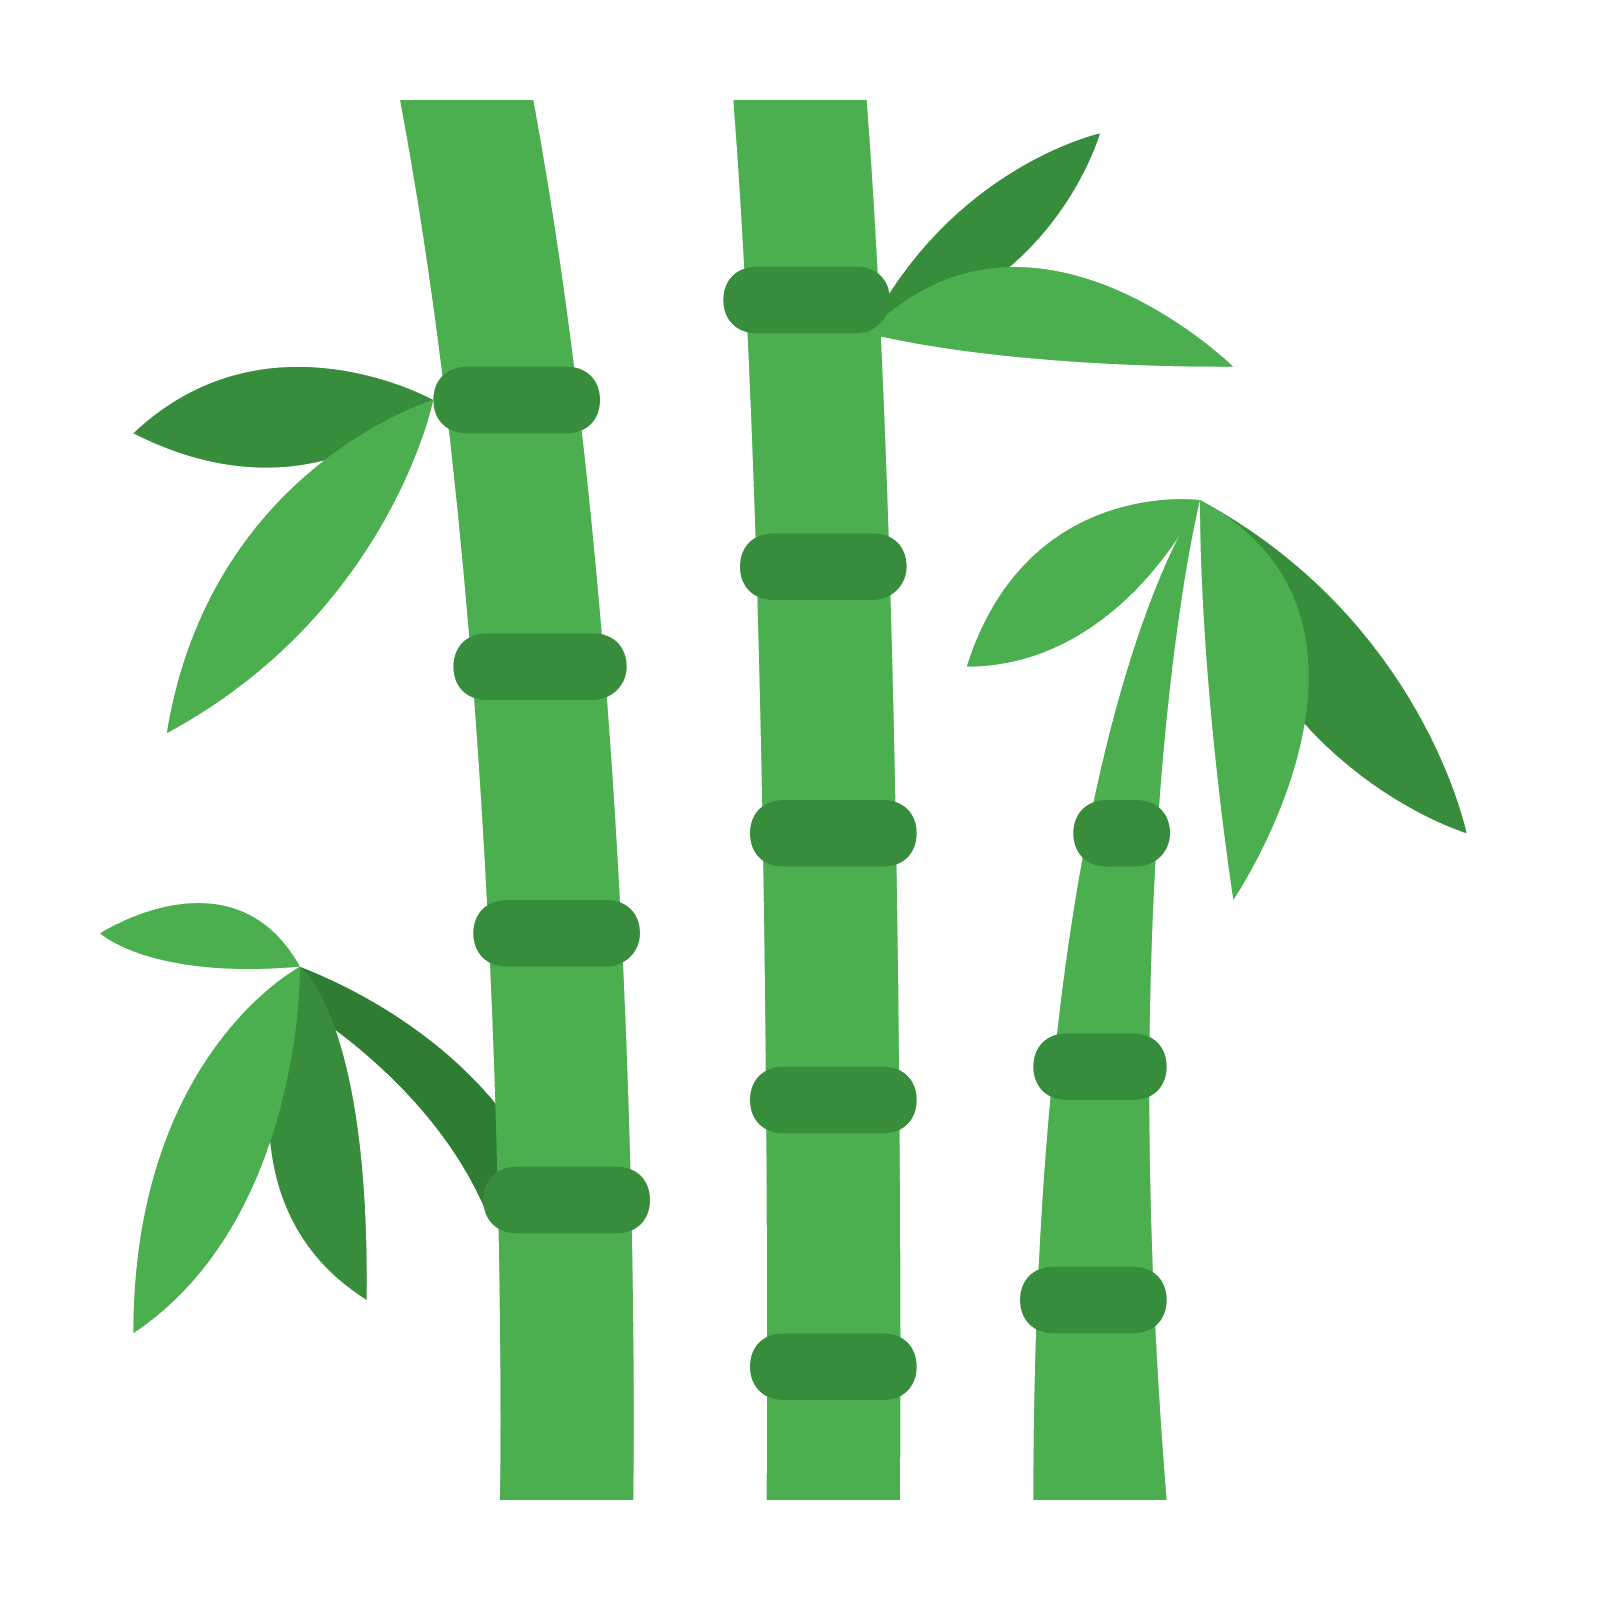 Bamboo png. Icon free download and